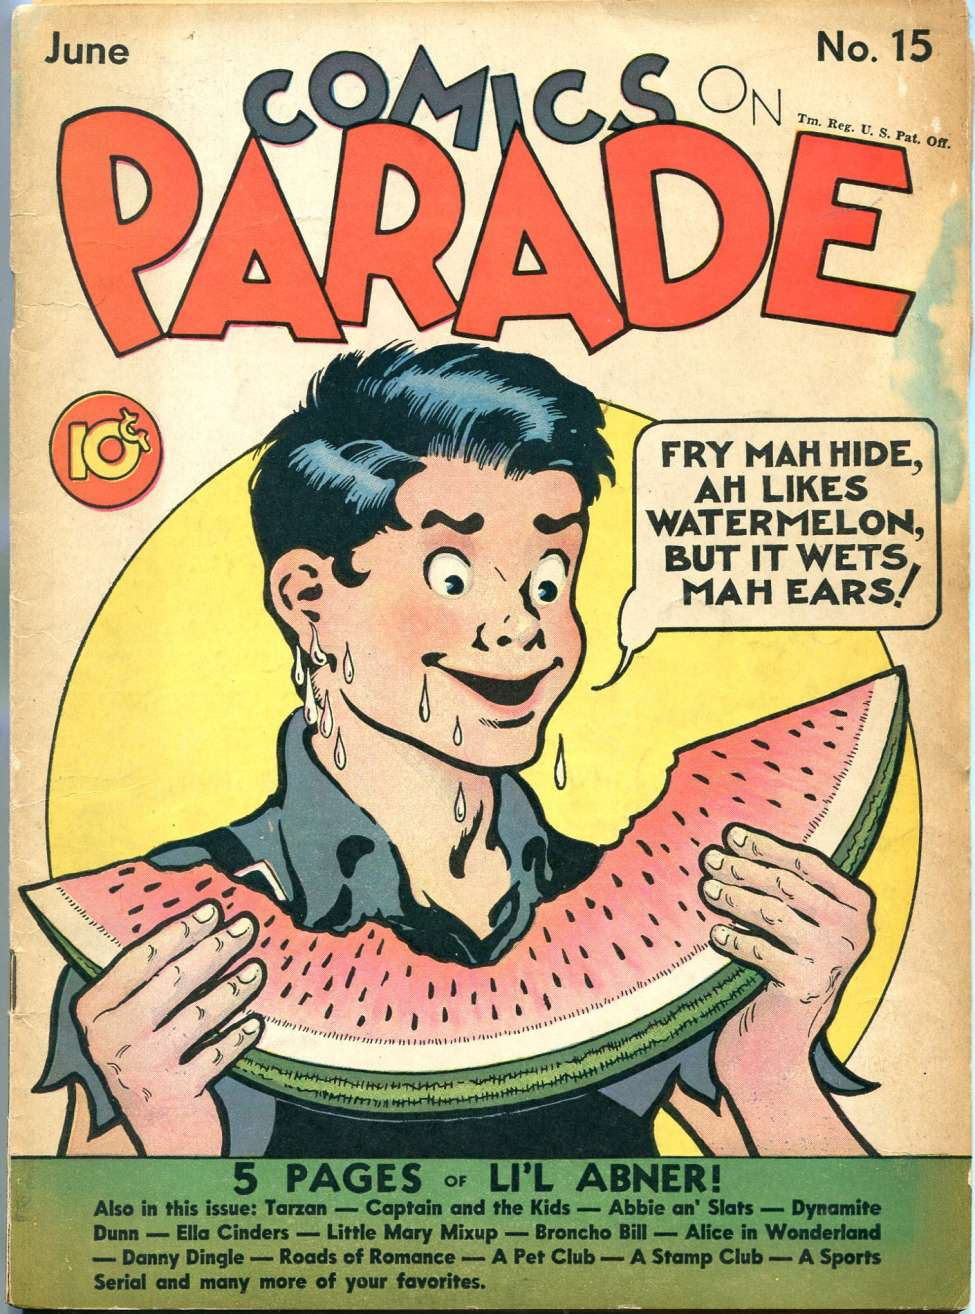 Comic Book Cover For Comics on Parade v2 3 (15)